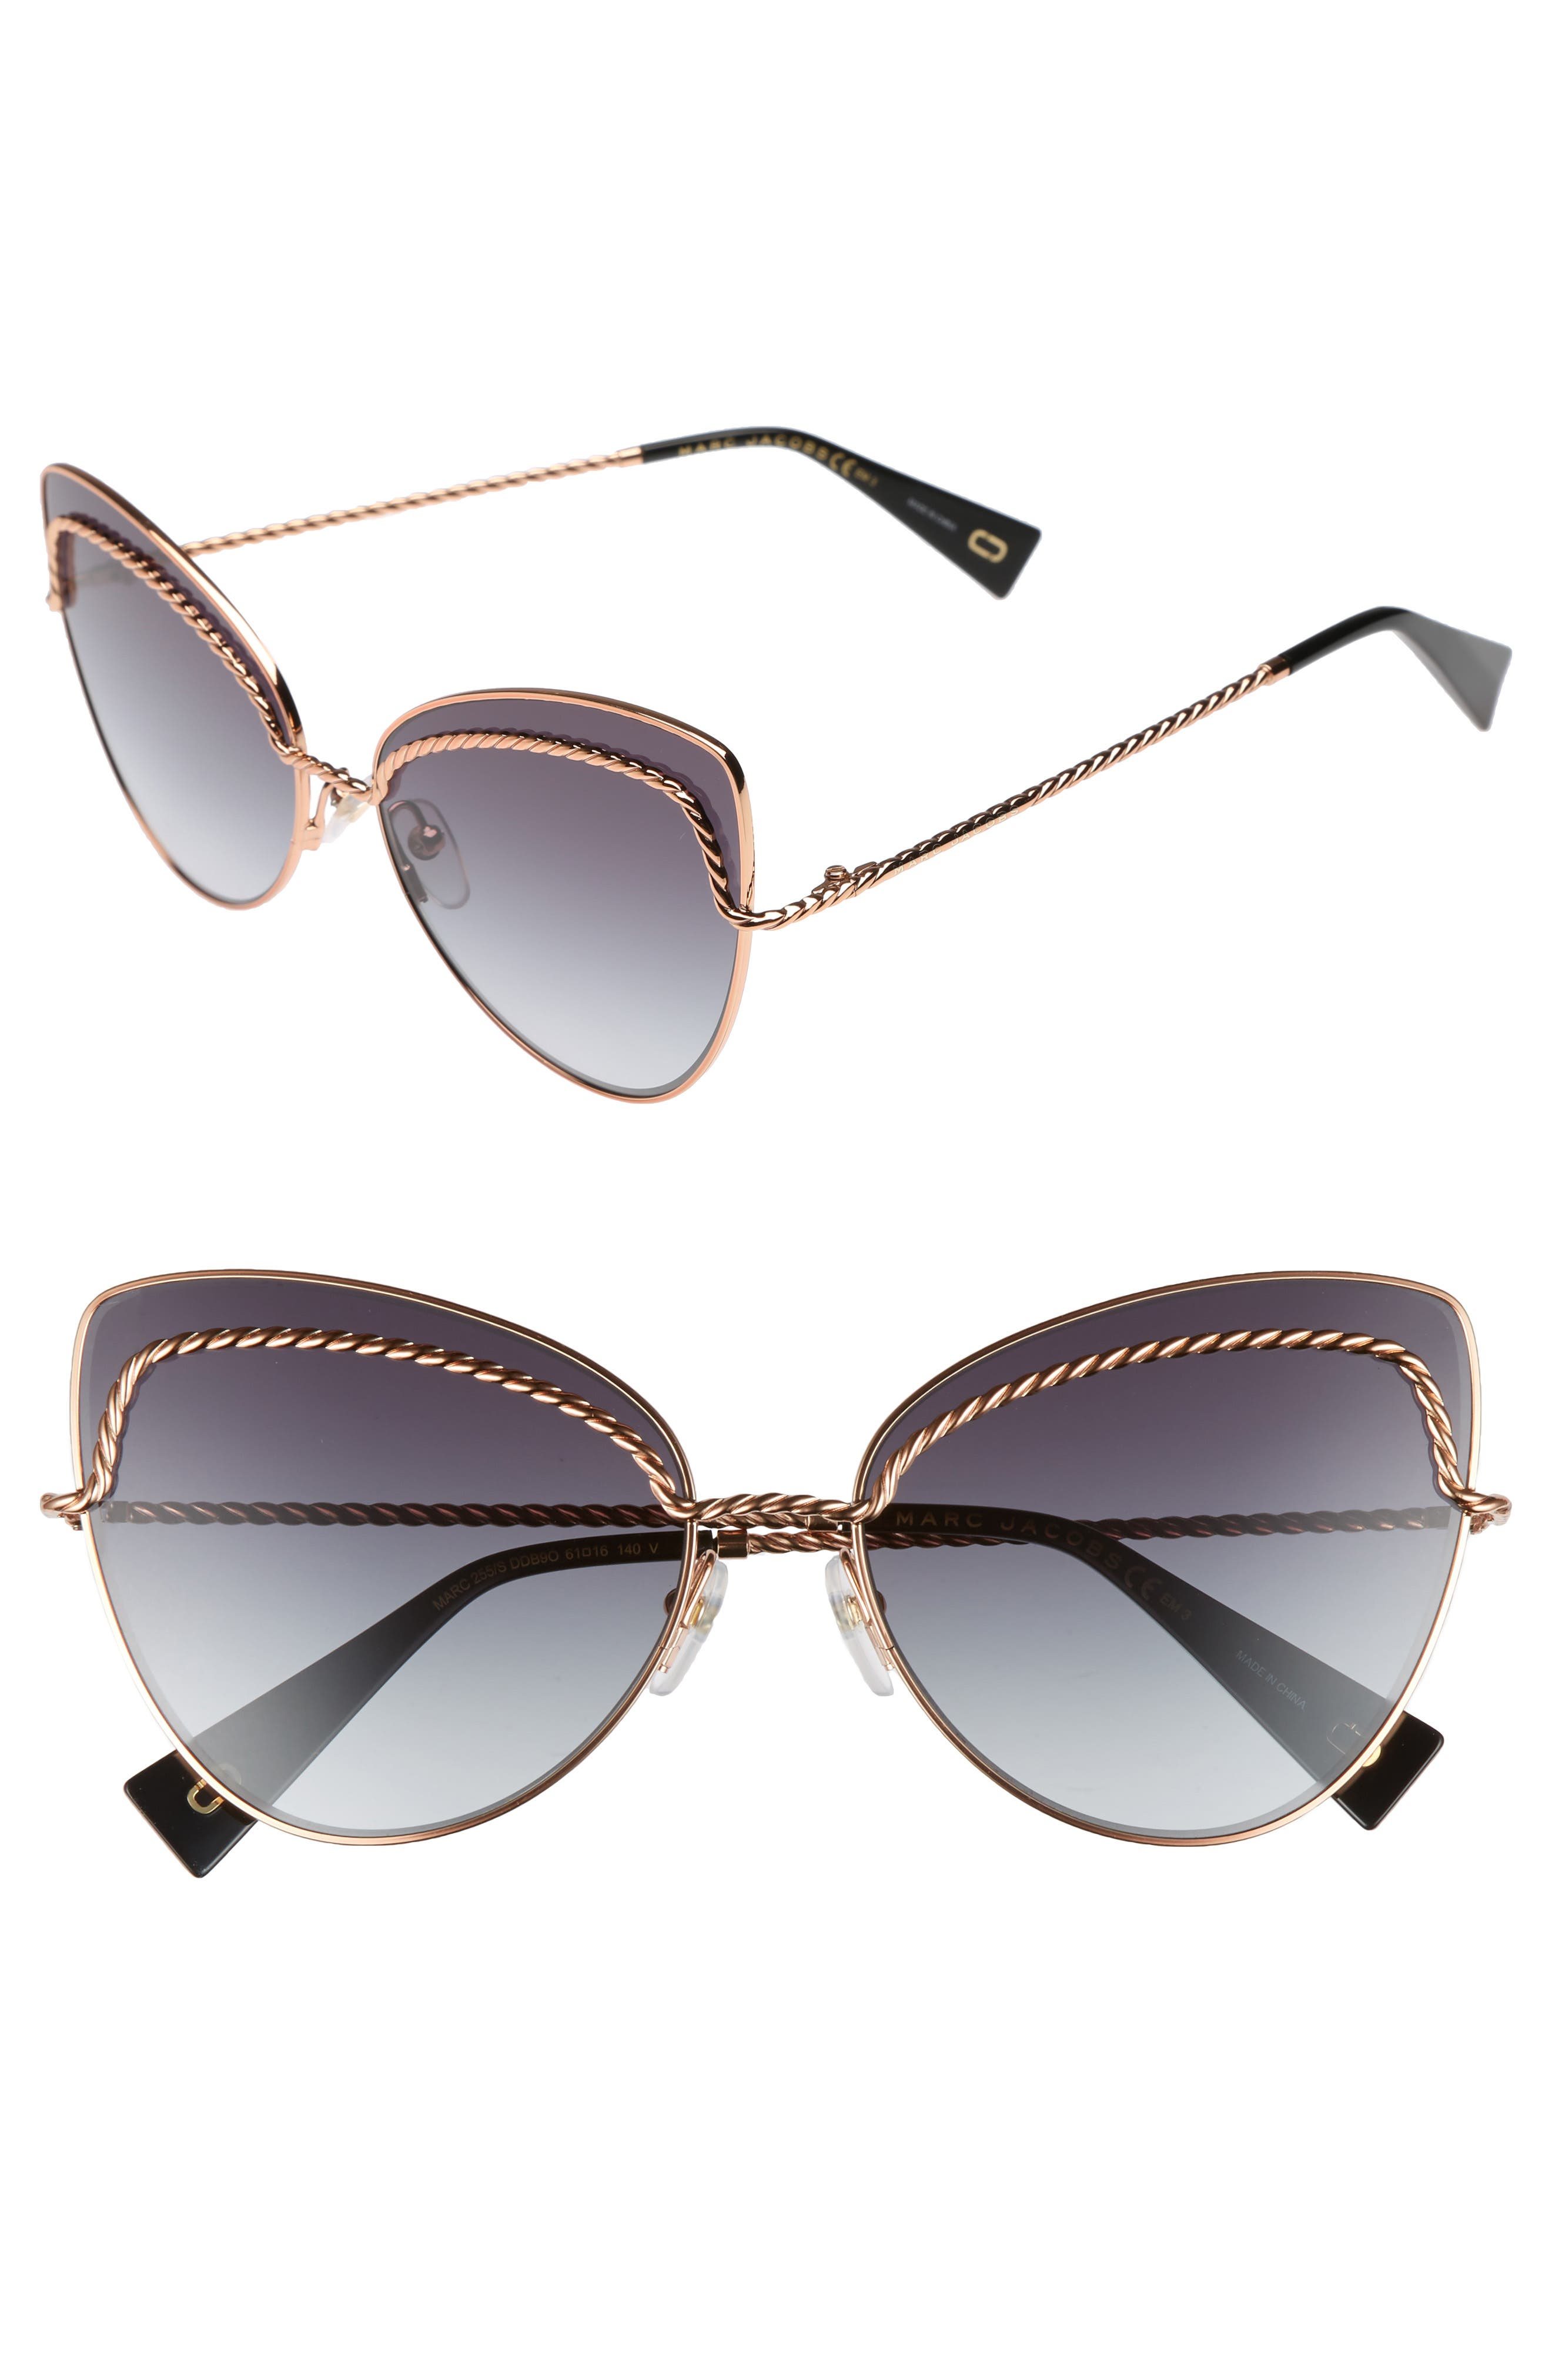 61mm Butterfly Sunglasses,                         Main,                         color,